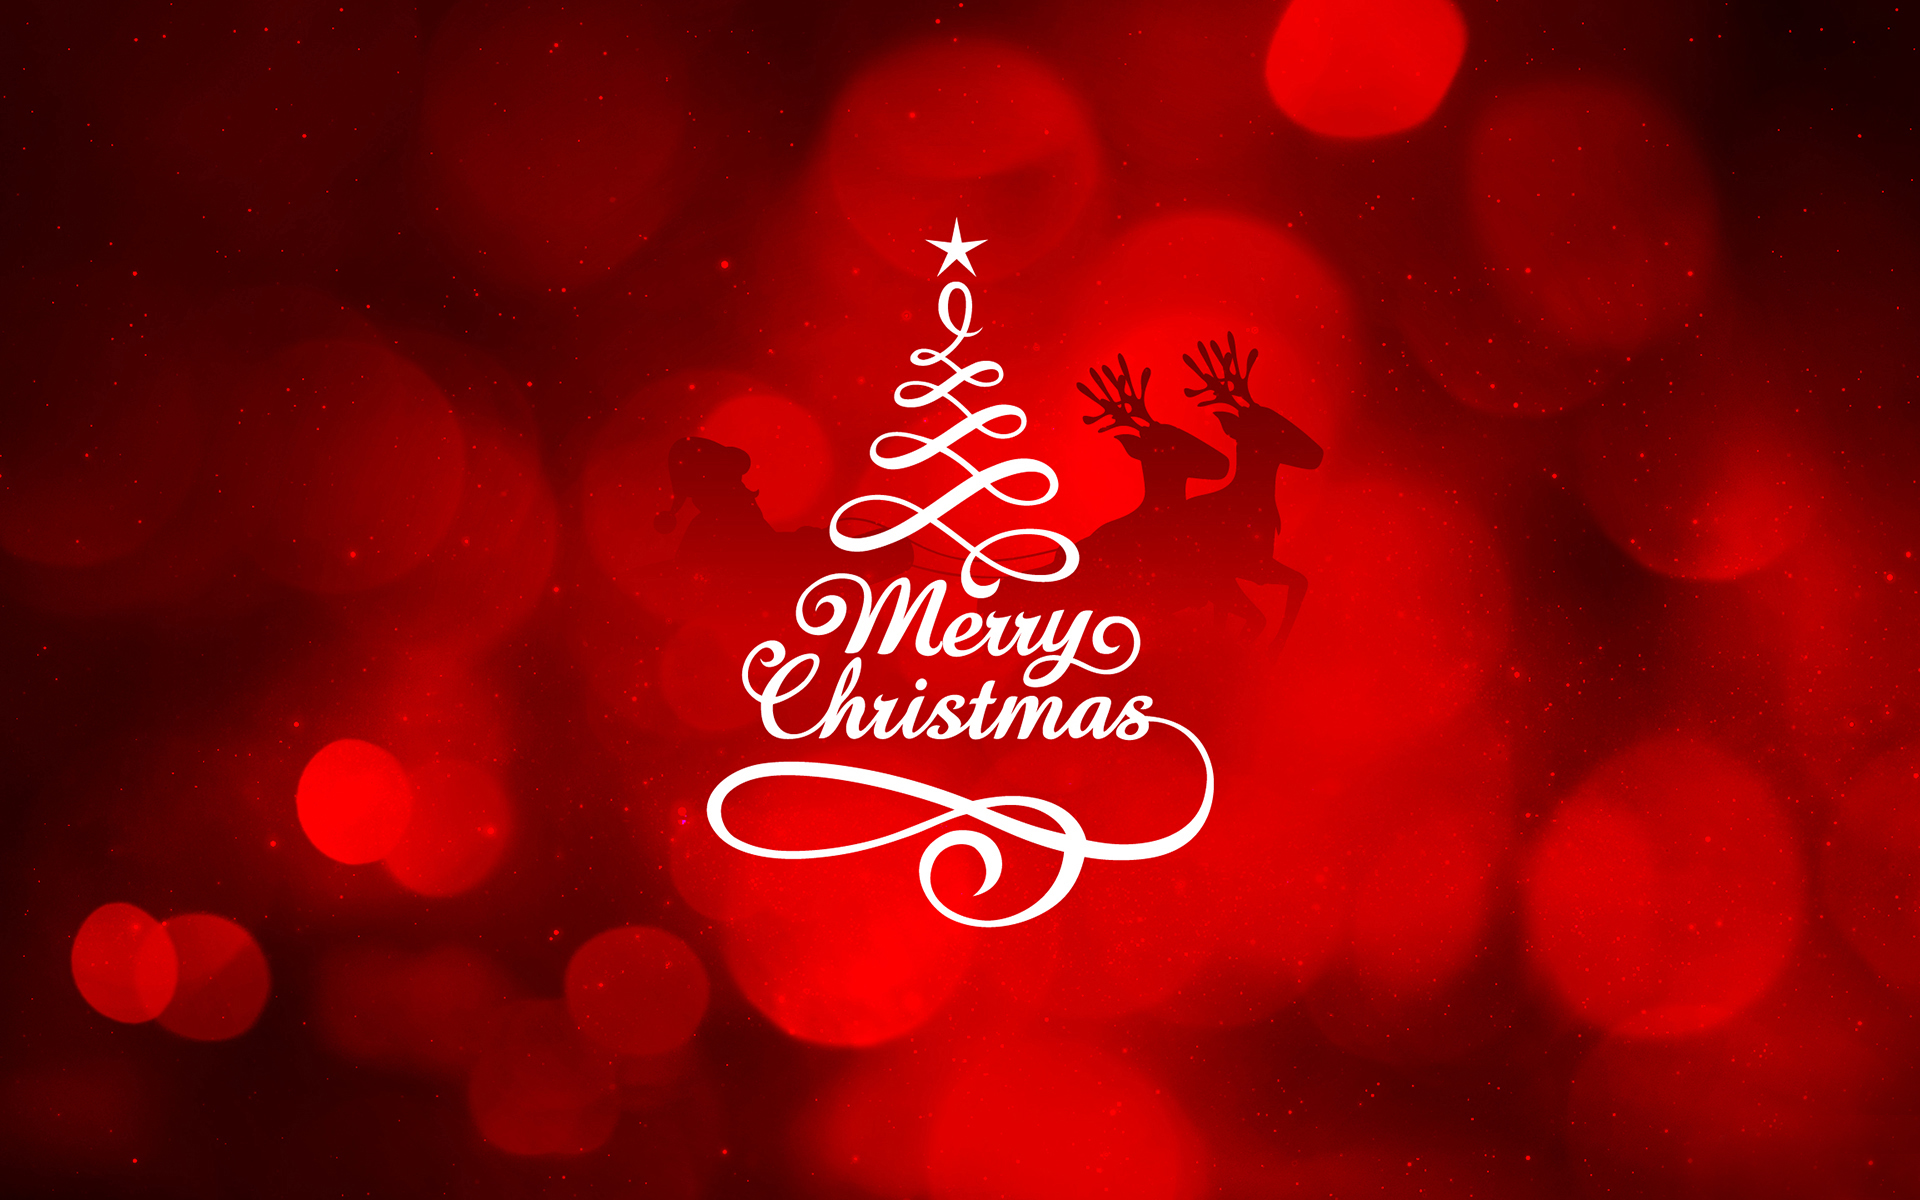 Merry Christmas New 2014 Wallpaper 1920x1200